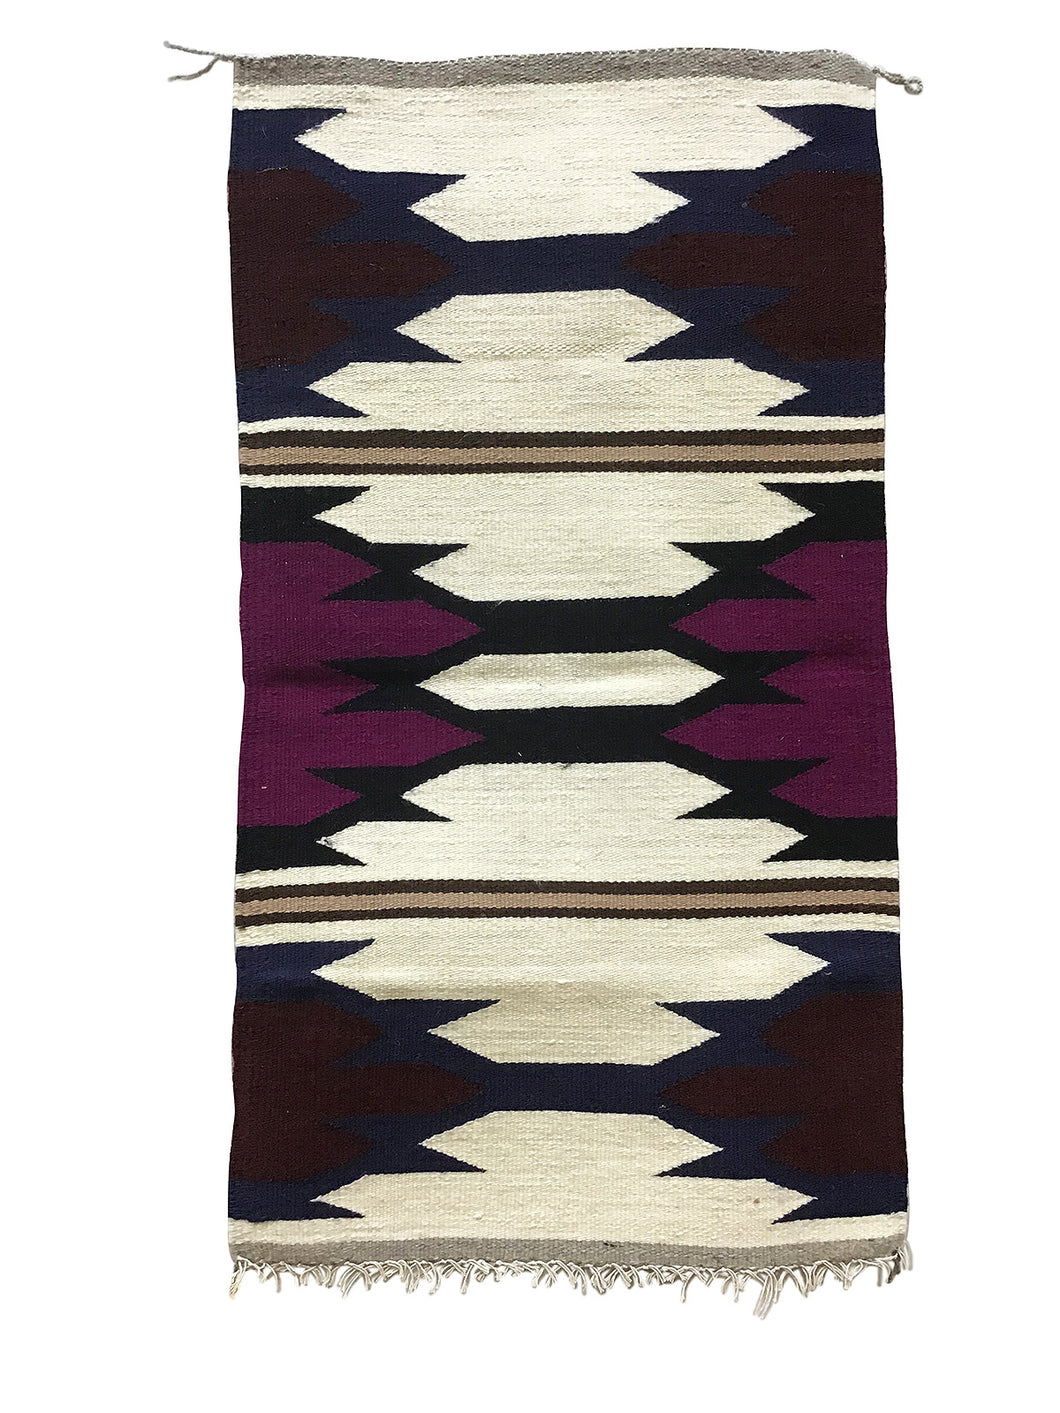 "Faye Peterson, Gallup Throw Rug, Navajo Handwoven, Wool, Cotton, 37"" x 20 1/2"""